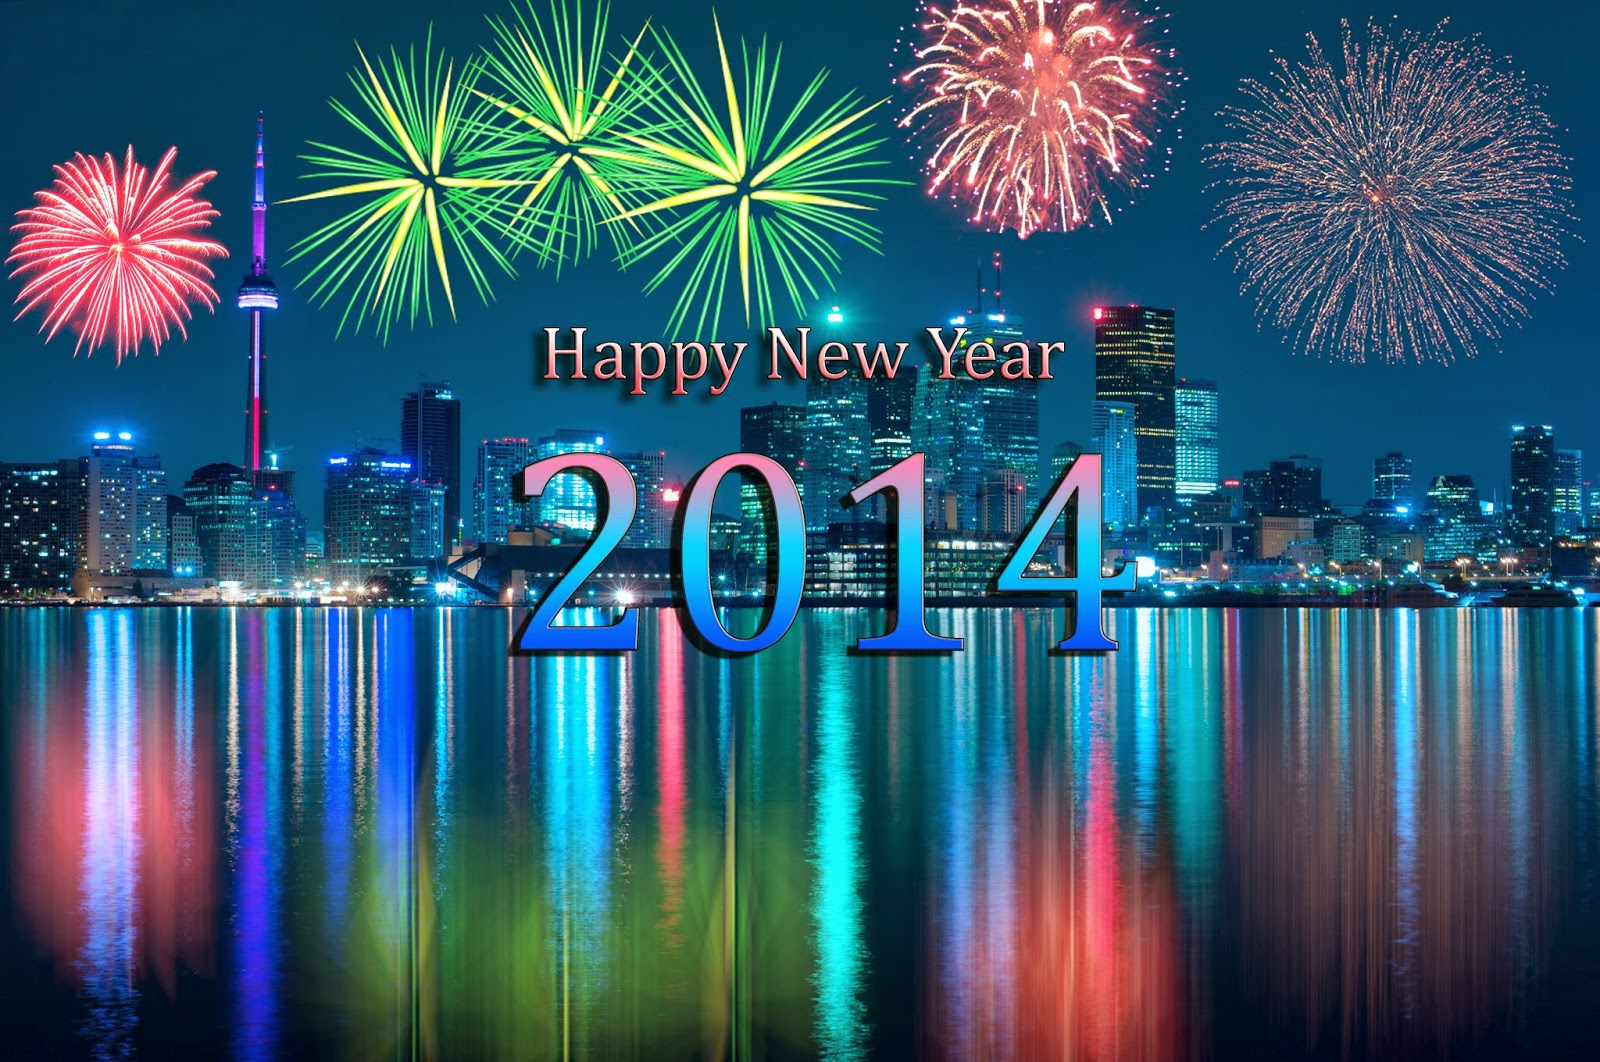 Happy new year 1st january 2014 hd pictures happiness style happy new year 2014 hd picturestractive voltagebd Images